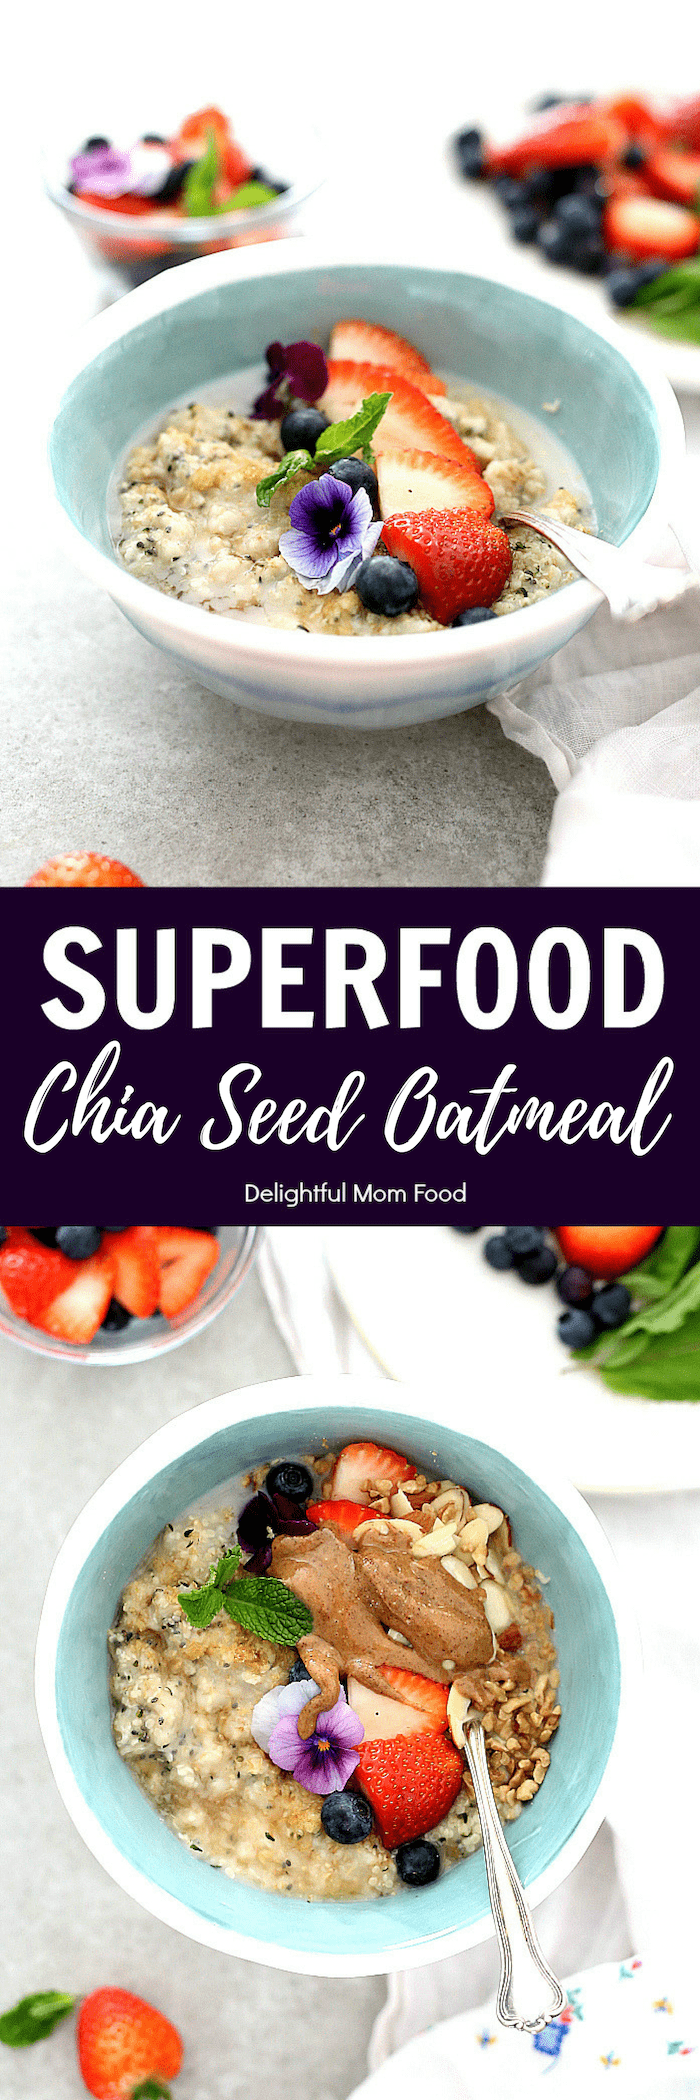 Start the morning fueled and energized with this superfood hemp and chia seed oatmeal bowl! It is packed naturally with fiber, protein and omega's that will make you feel alert, balanced and full! #oatmeal #chiaseed #hempseed #vegan #glutenfree #healthy #quick #superfood #flaxmeal #recipe #breakfast | Recipe at delightfulmomfood.com